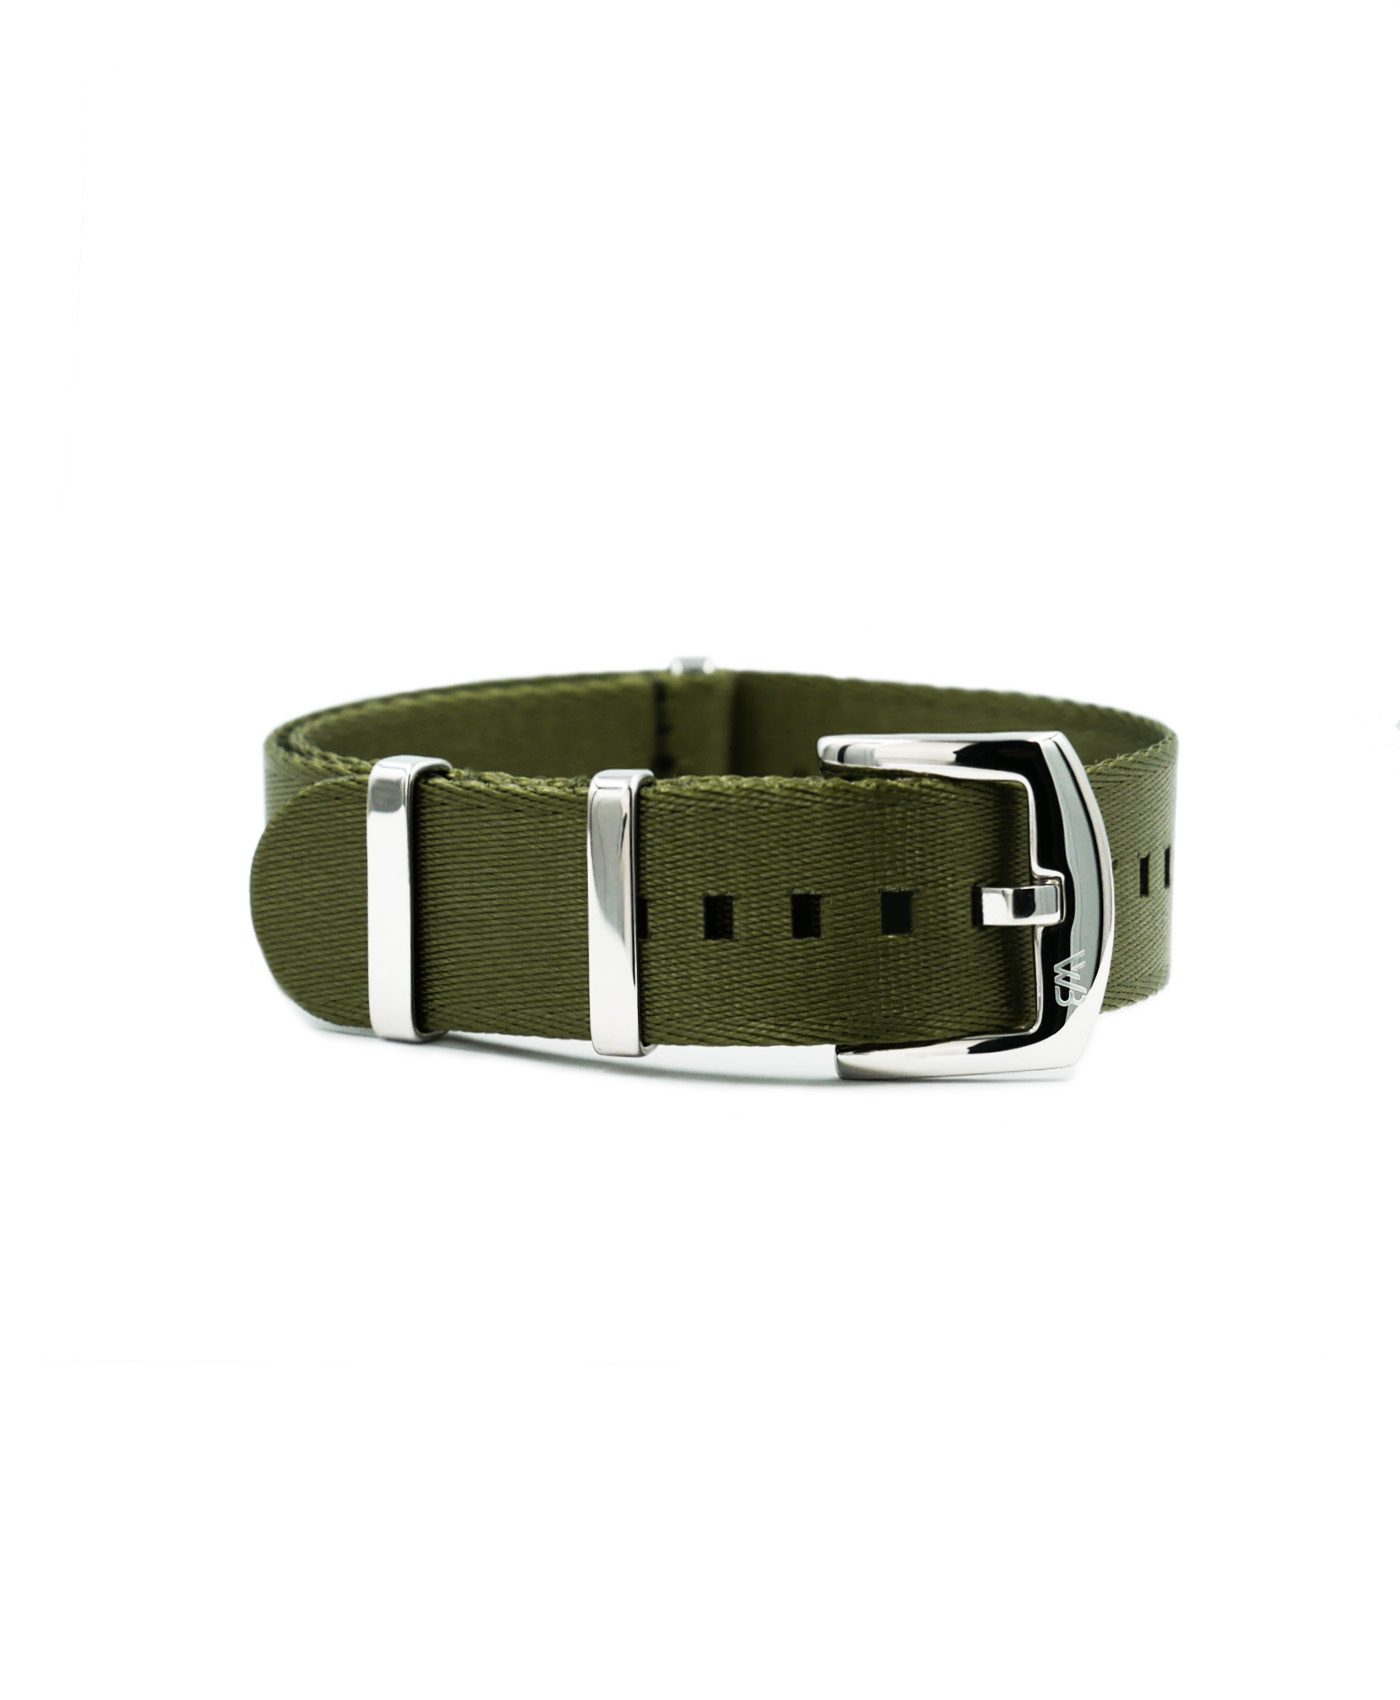 Premium 1.2 mm seat belt polished NATO Strap green front by WatchBandit